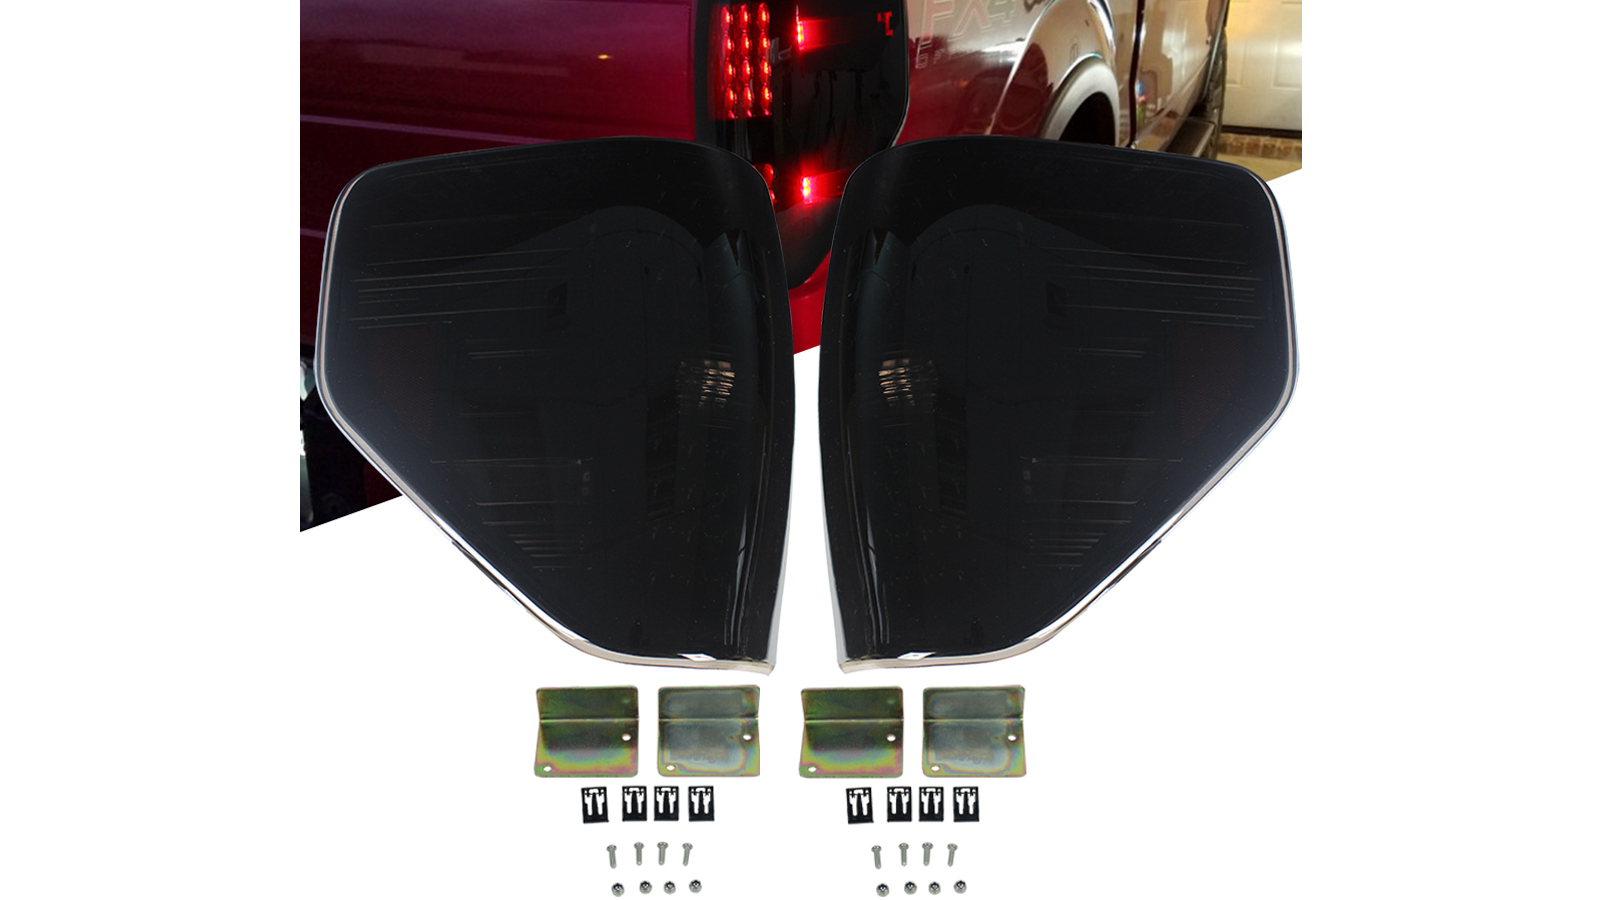 Best Quality Rear LED Tail Light Brake Lamp Taillight Replacement for Ford F150 Pickup 2009-2014 Factory